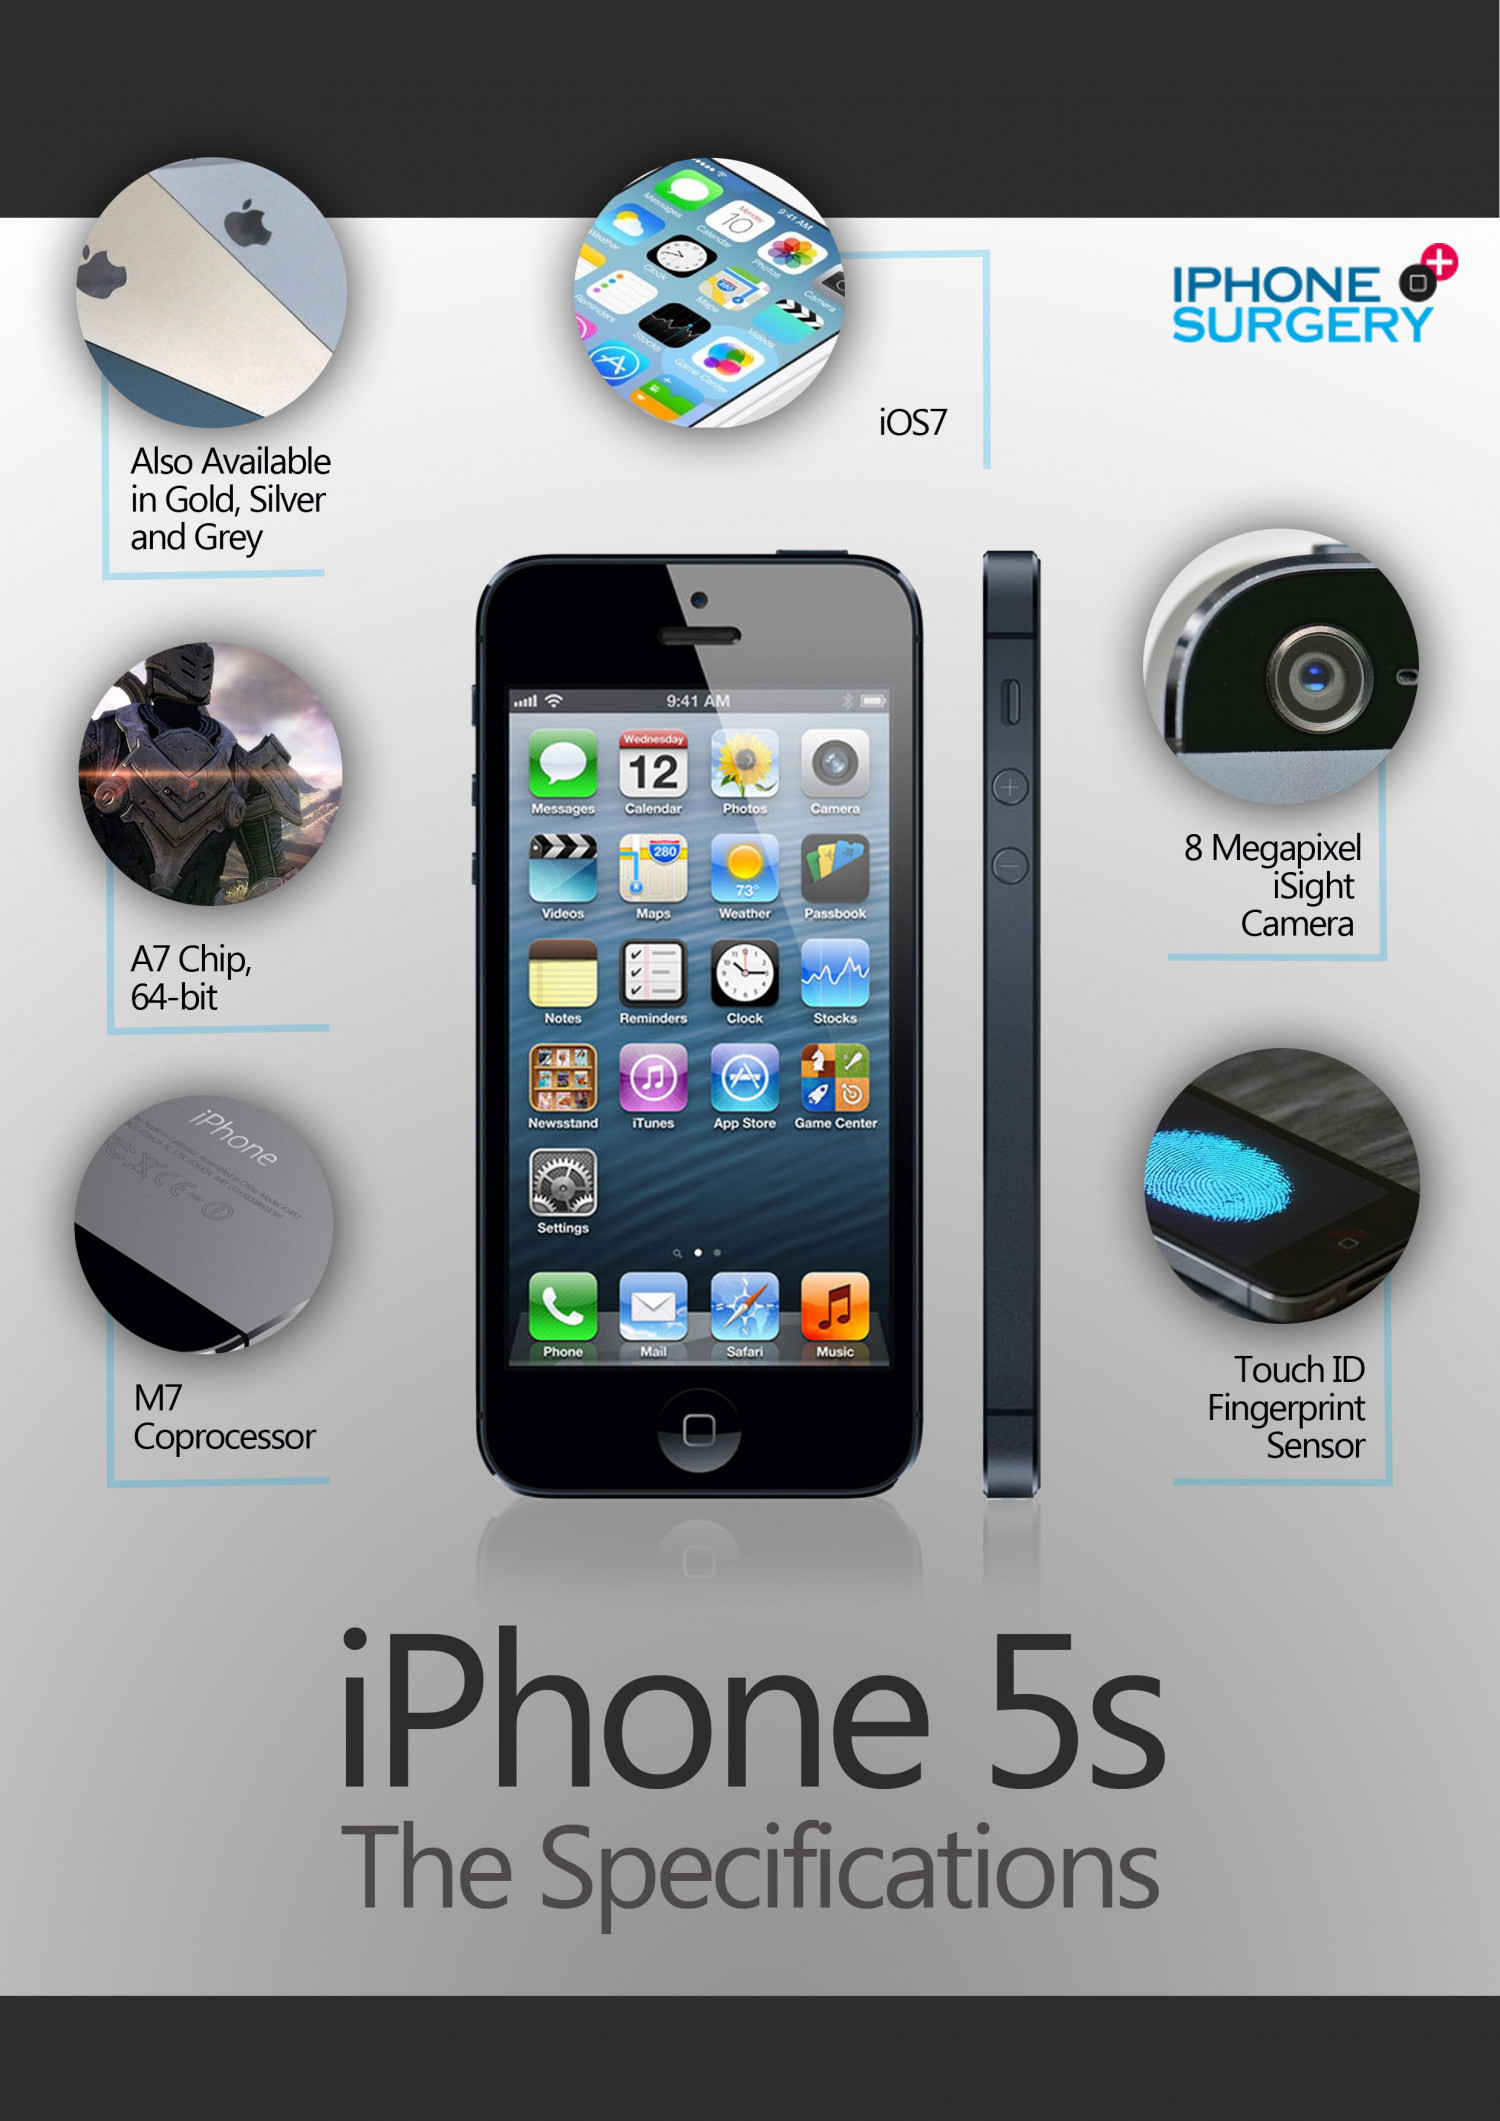 iPhone 5s Specifications Infographic